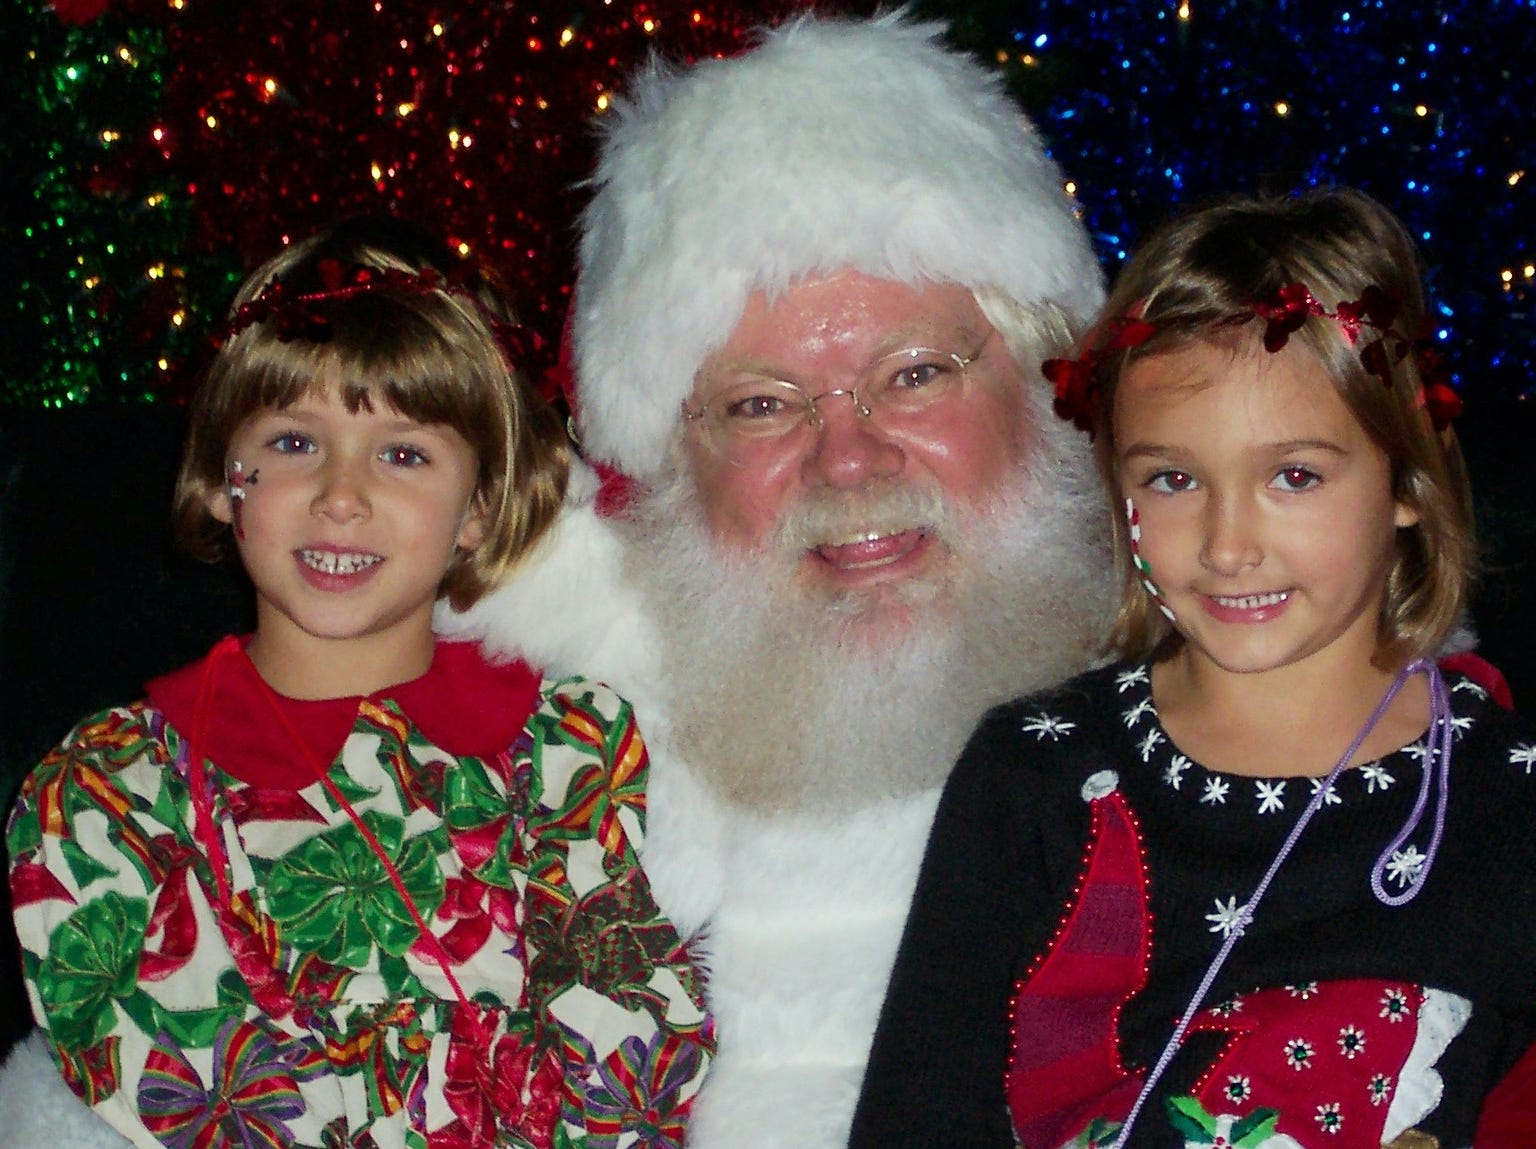 Payton and Jordan Todd, ages 4 and 5, chatted with Santa at the Fantasy of Trees Nov. 24. Payton and Jordan are the daughters of Bill and Eva Todd.